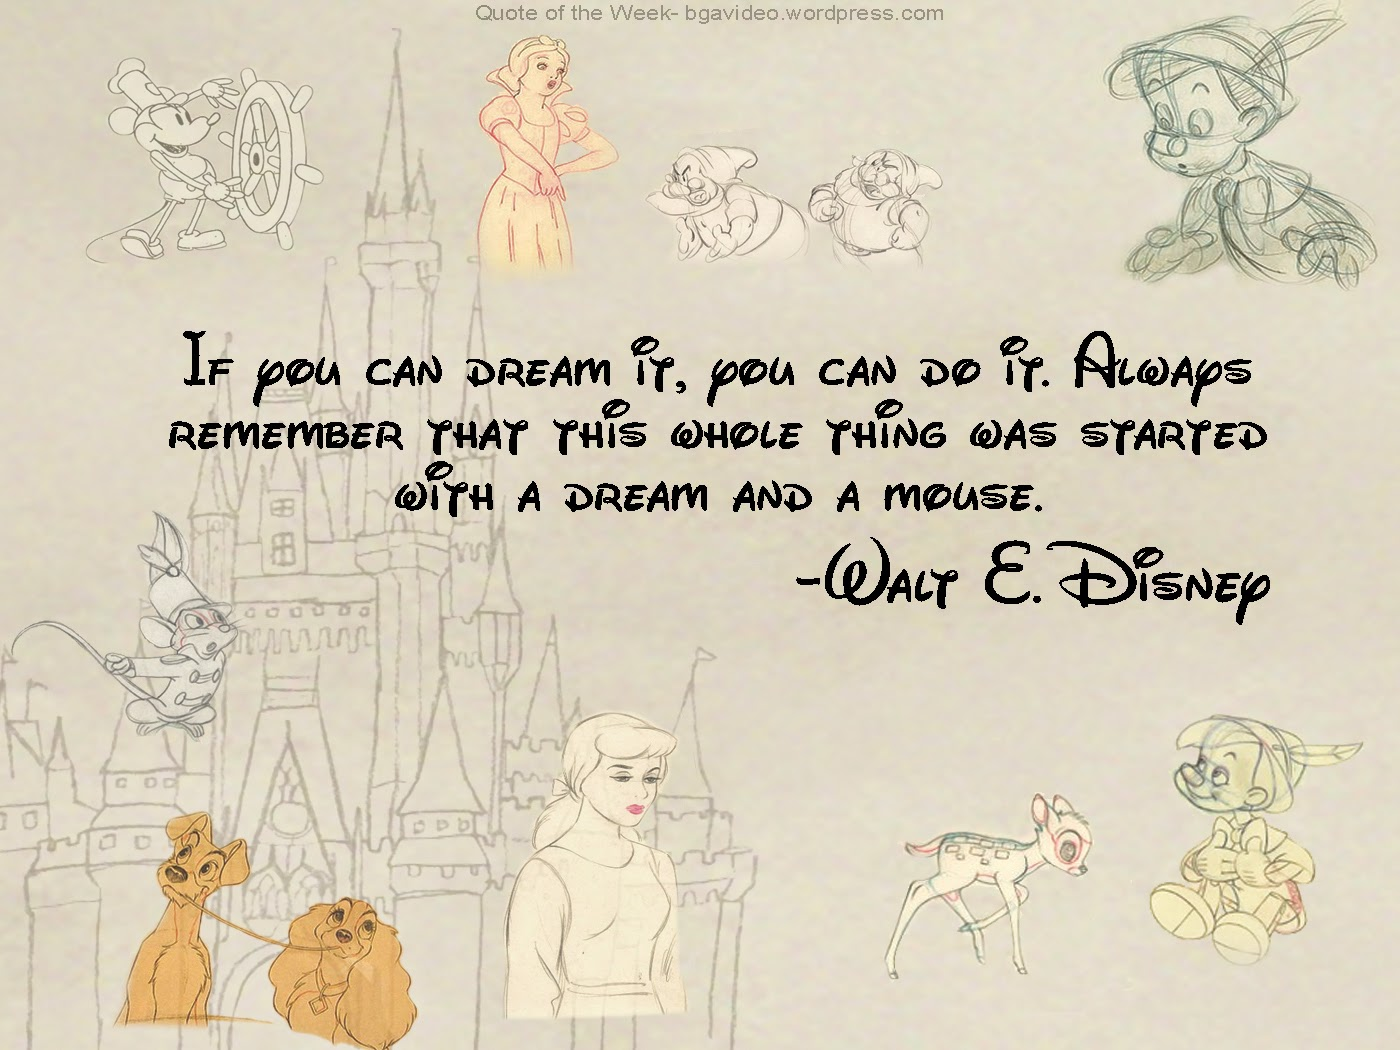 Inspirational Quotes From Disney QuotesGram 1400x1050